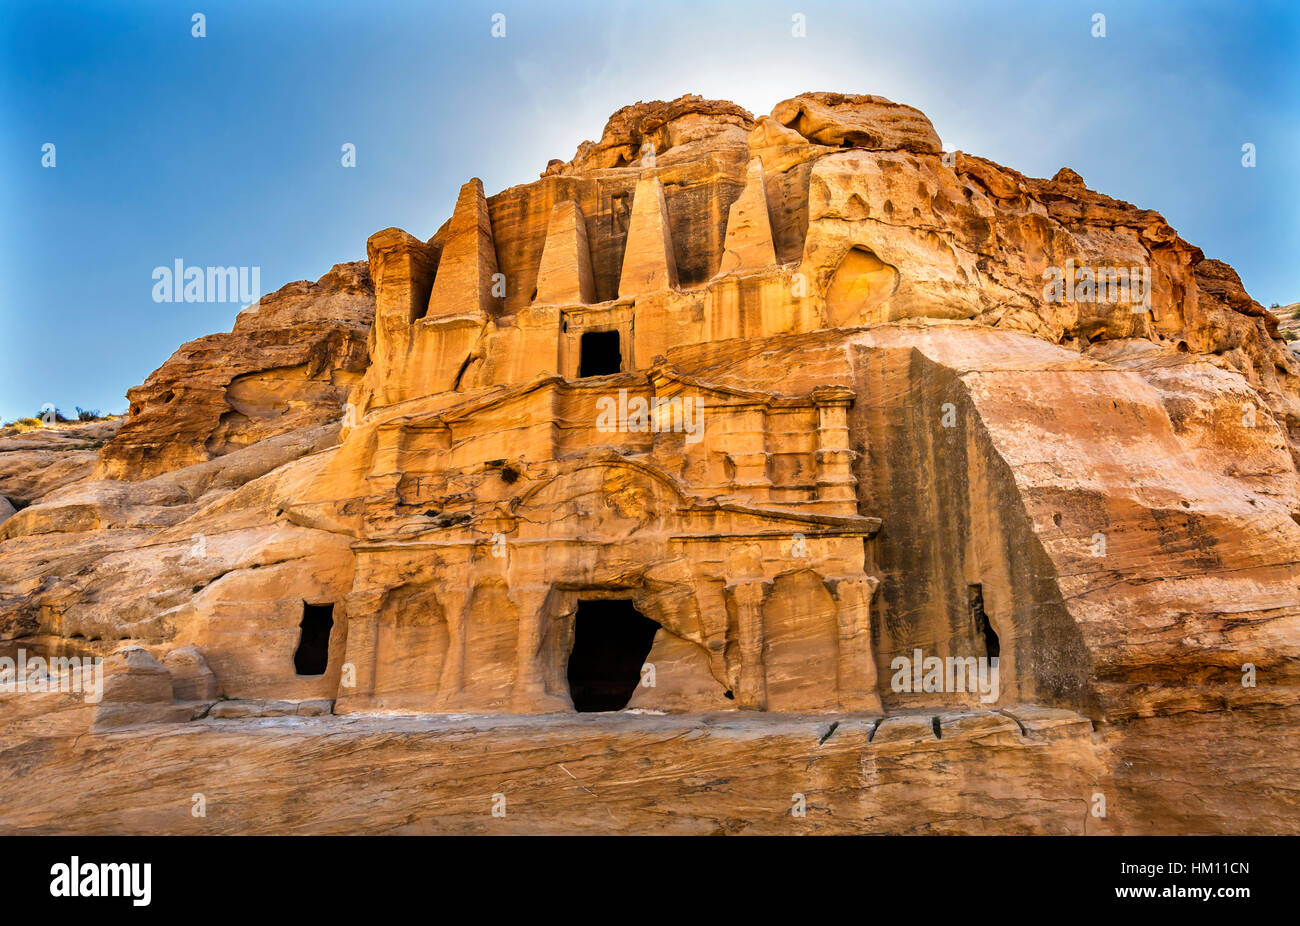 Yellow Obelisk Tomb Bab el-siq Triclinium Outer Siq Canyon Hiking To Entrance Into Petra Jordan. - Stock Image